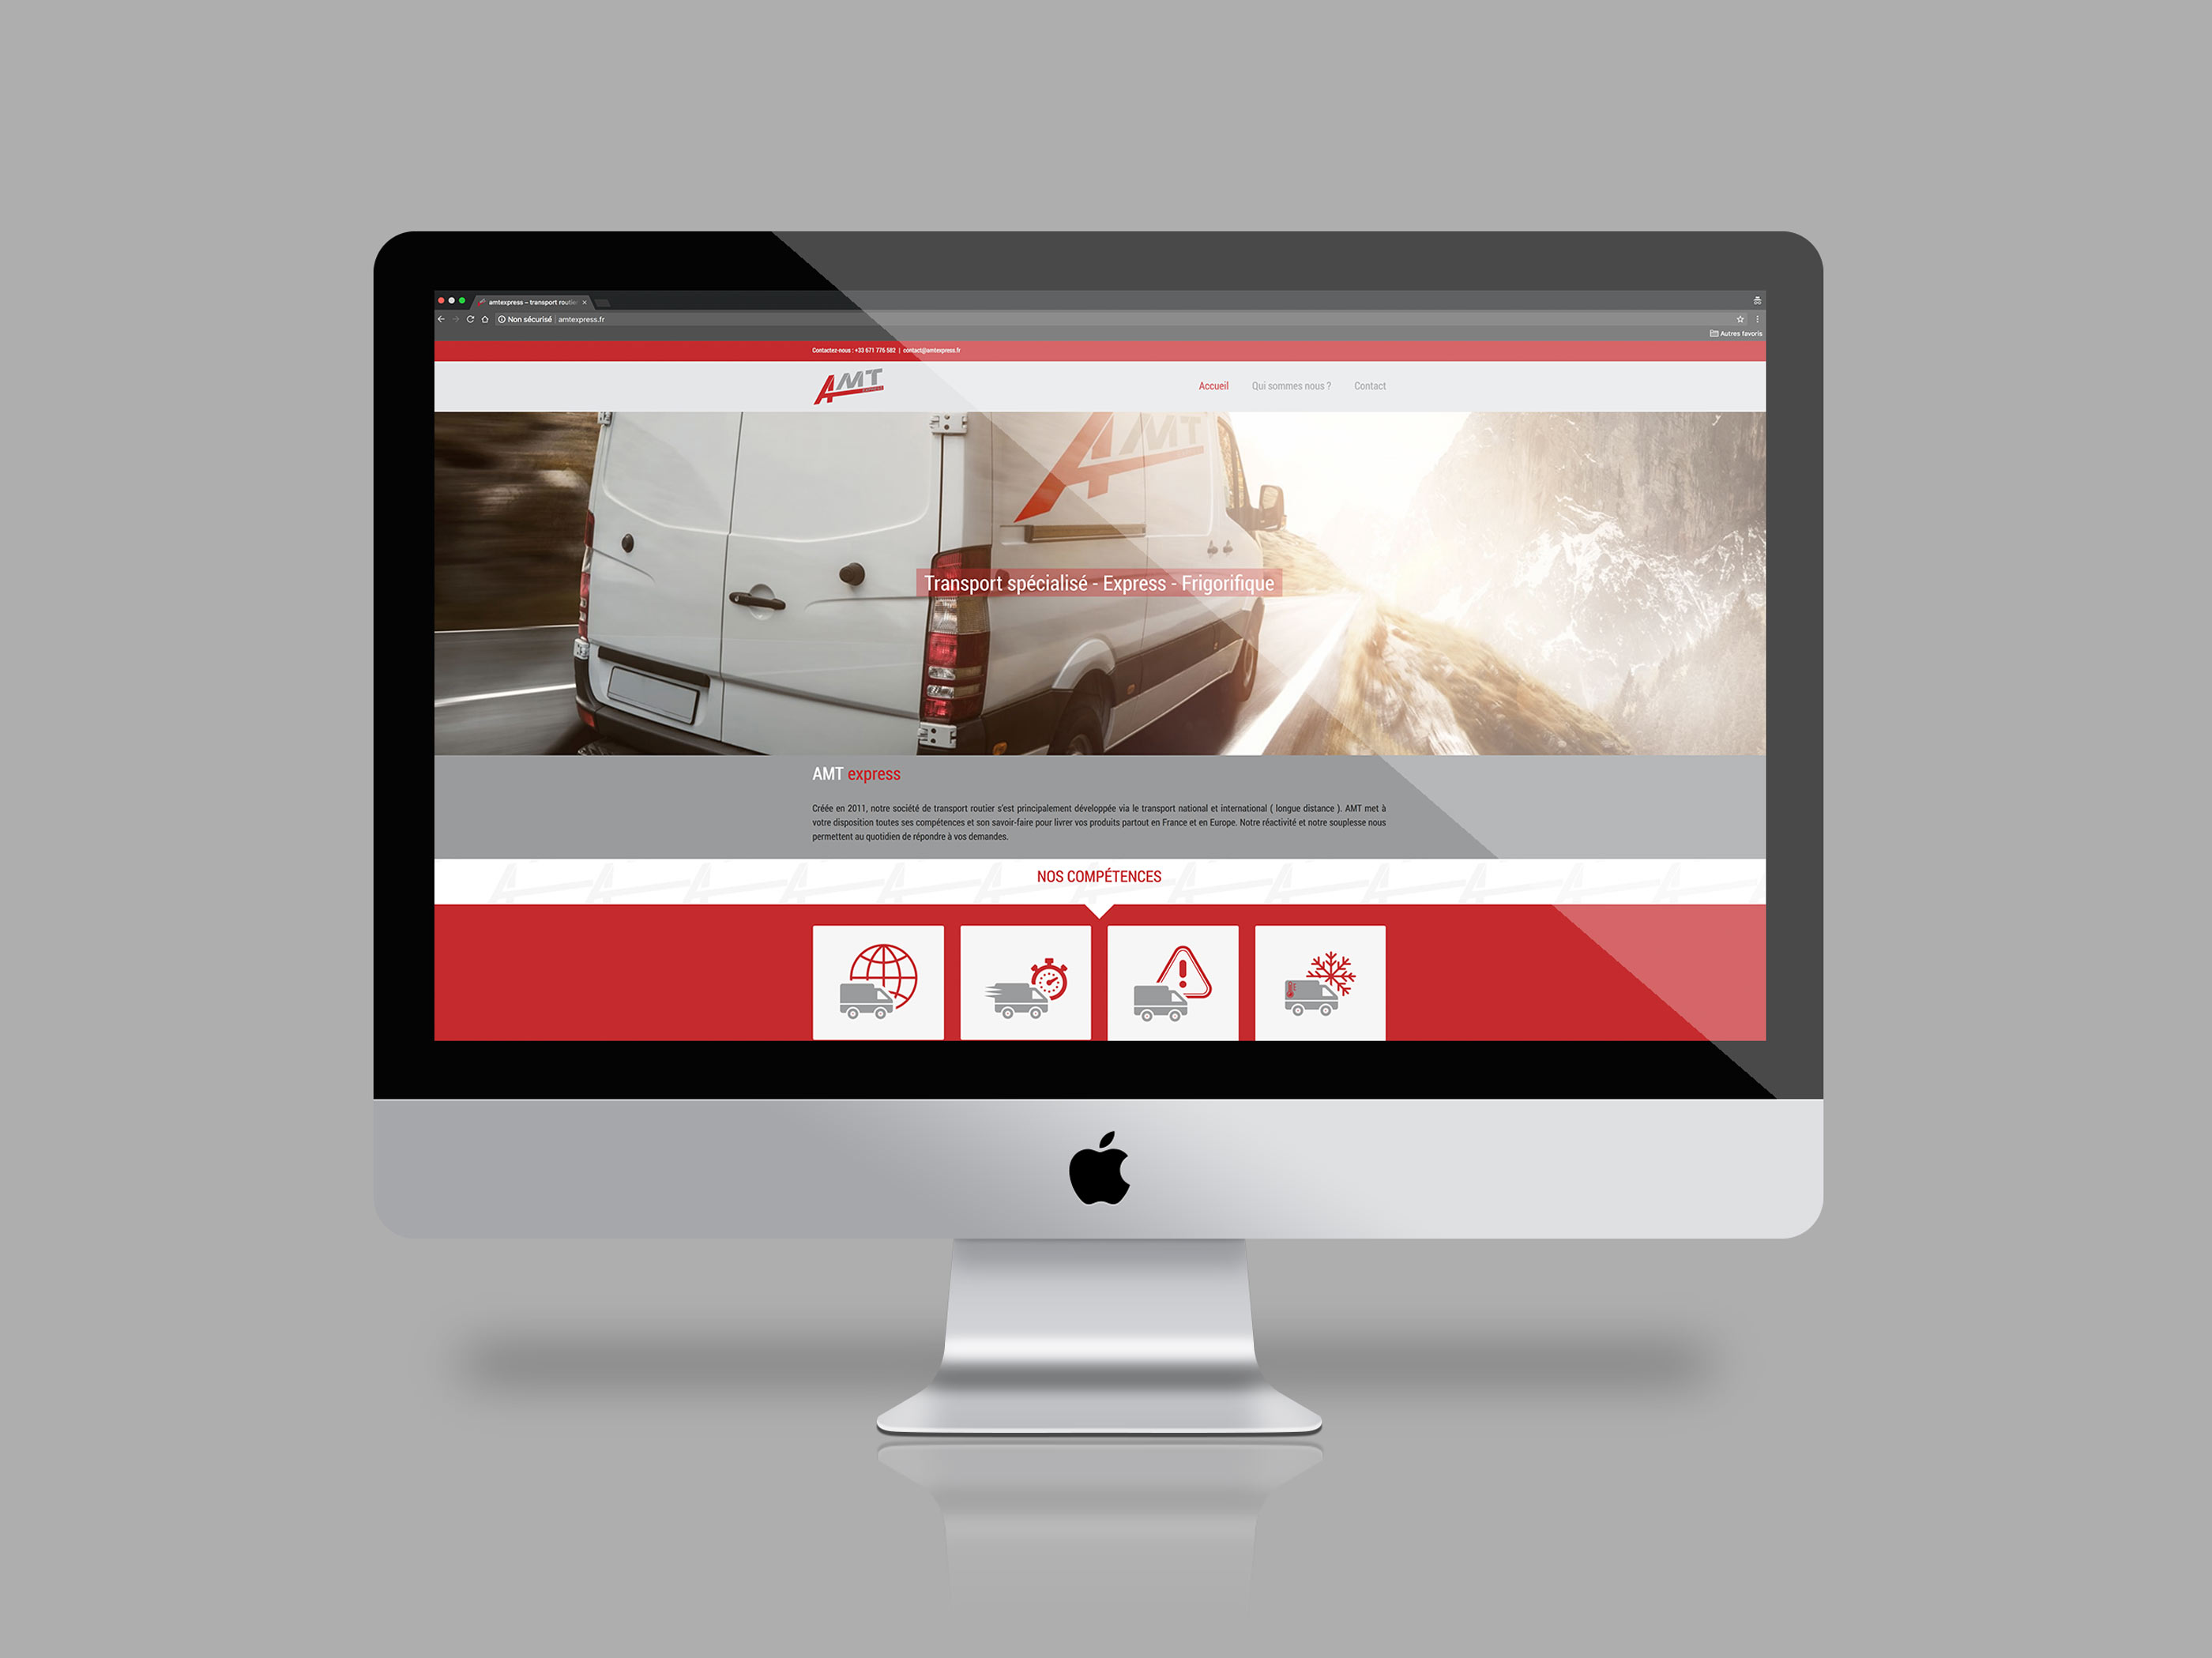 Conception site responsive design pour AMT express